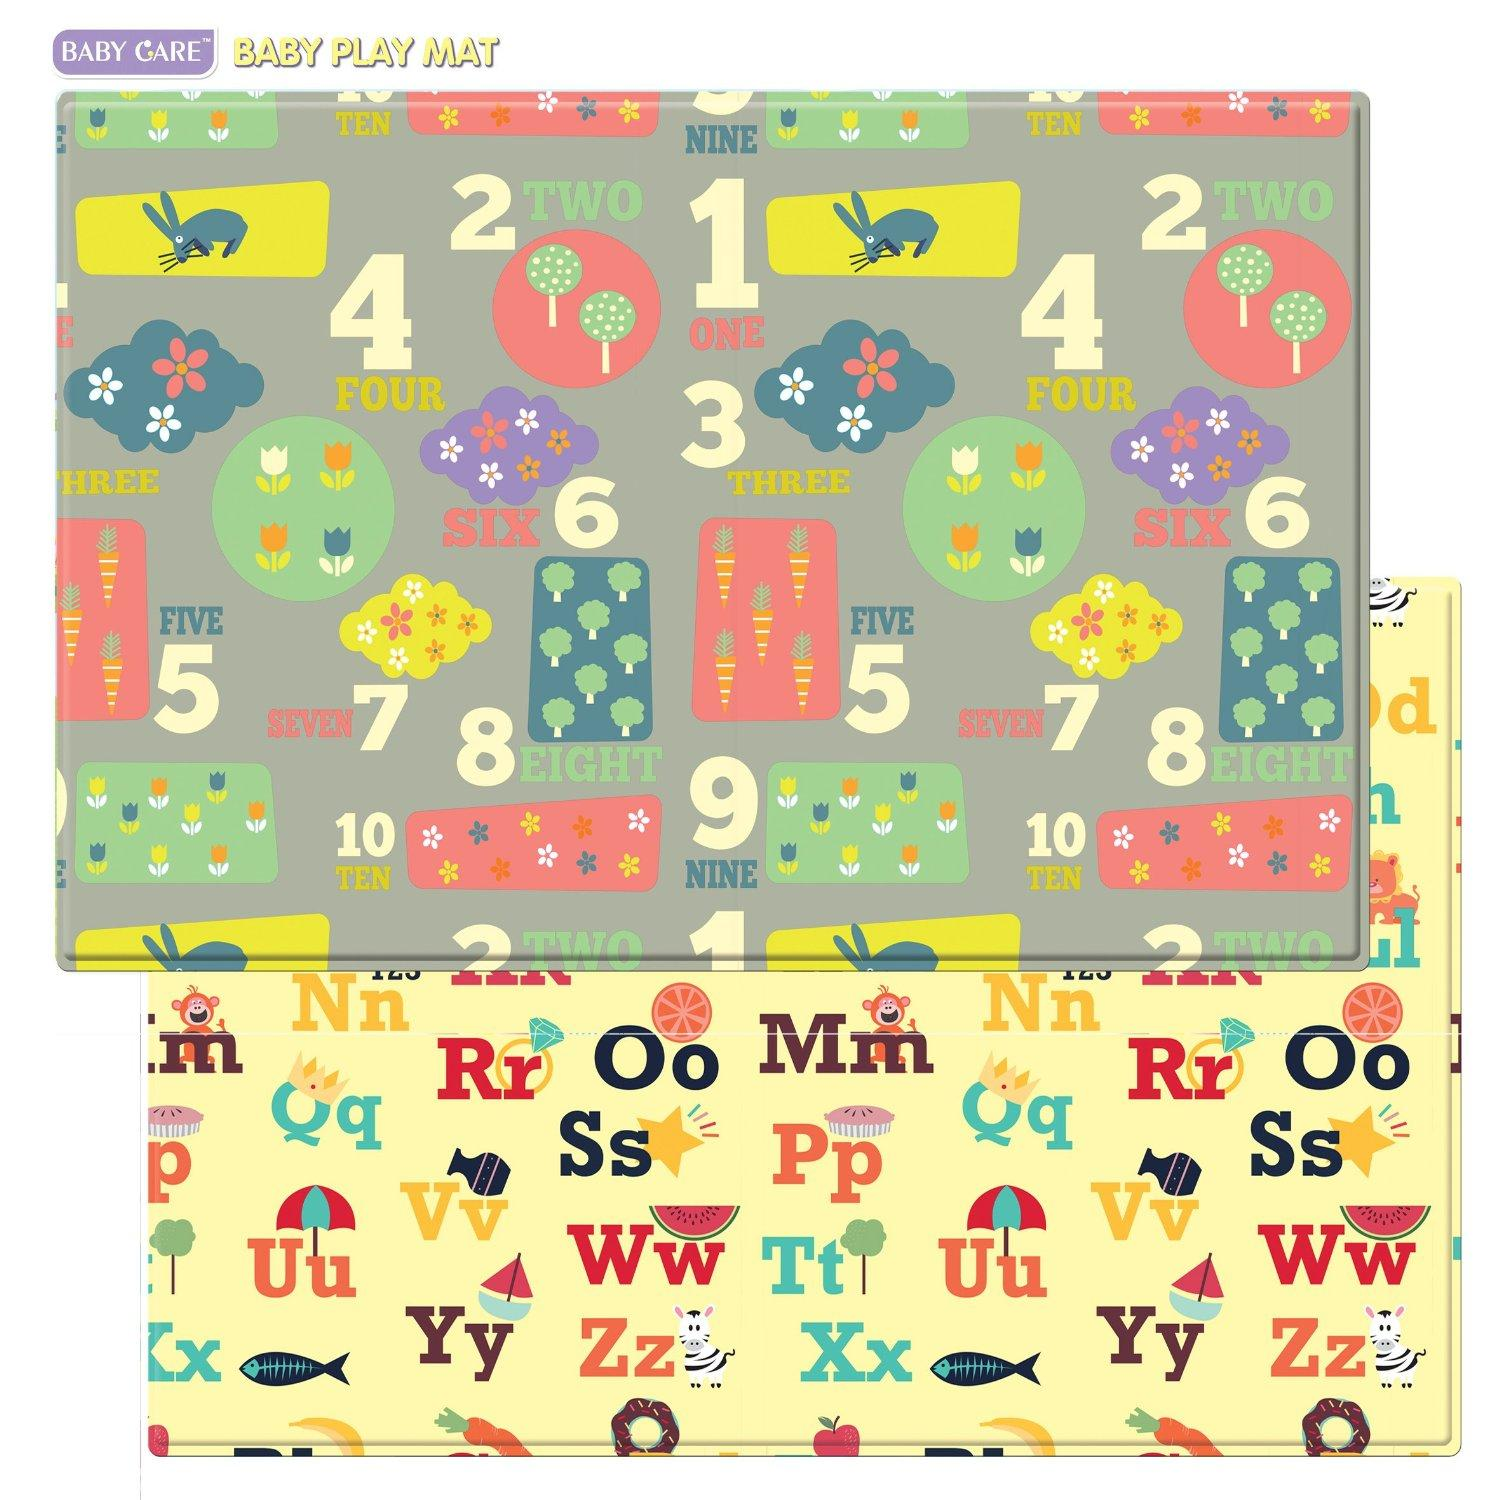 Baby Care Play Mat (Large)